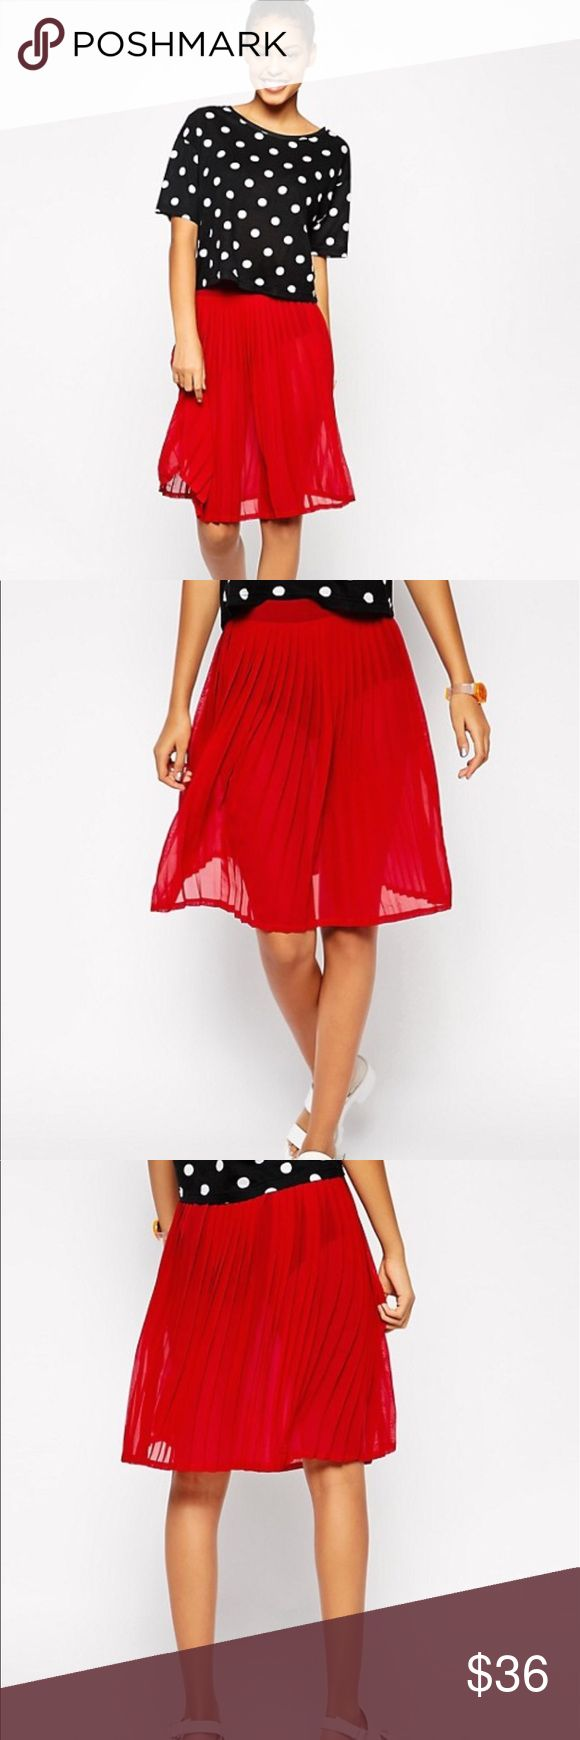 """American Apparel Red Chiffon Pleated Skirt This American Apparel Red Chiffon Pleated Skirt is beyond adorable! It's so chic and hipster like. It's very versatile! You can wear this skirt with ANYTHING! It's in PERFECT CONDITION! 100% Polyester. Knee Length. Zips up the side. It is sheer so you would need leggings or a slip. I wish it fit me or I wouldn't be selling it. Measurements: Waist 15"""" From Waist to bottom of skirt 23"""" Please check my closet out! New items listed daily! Original price…"""